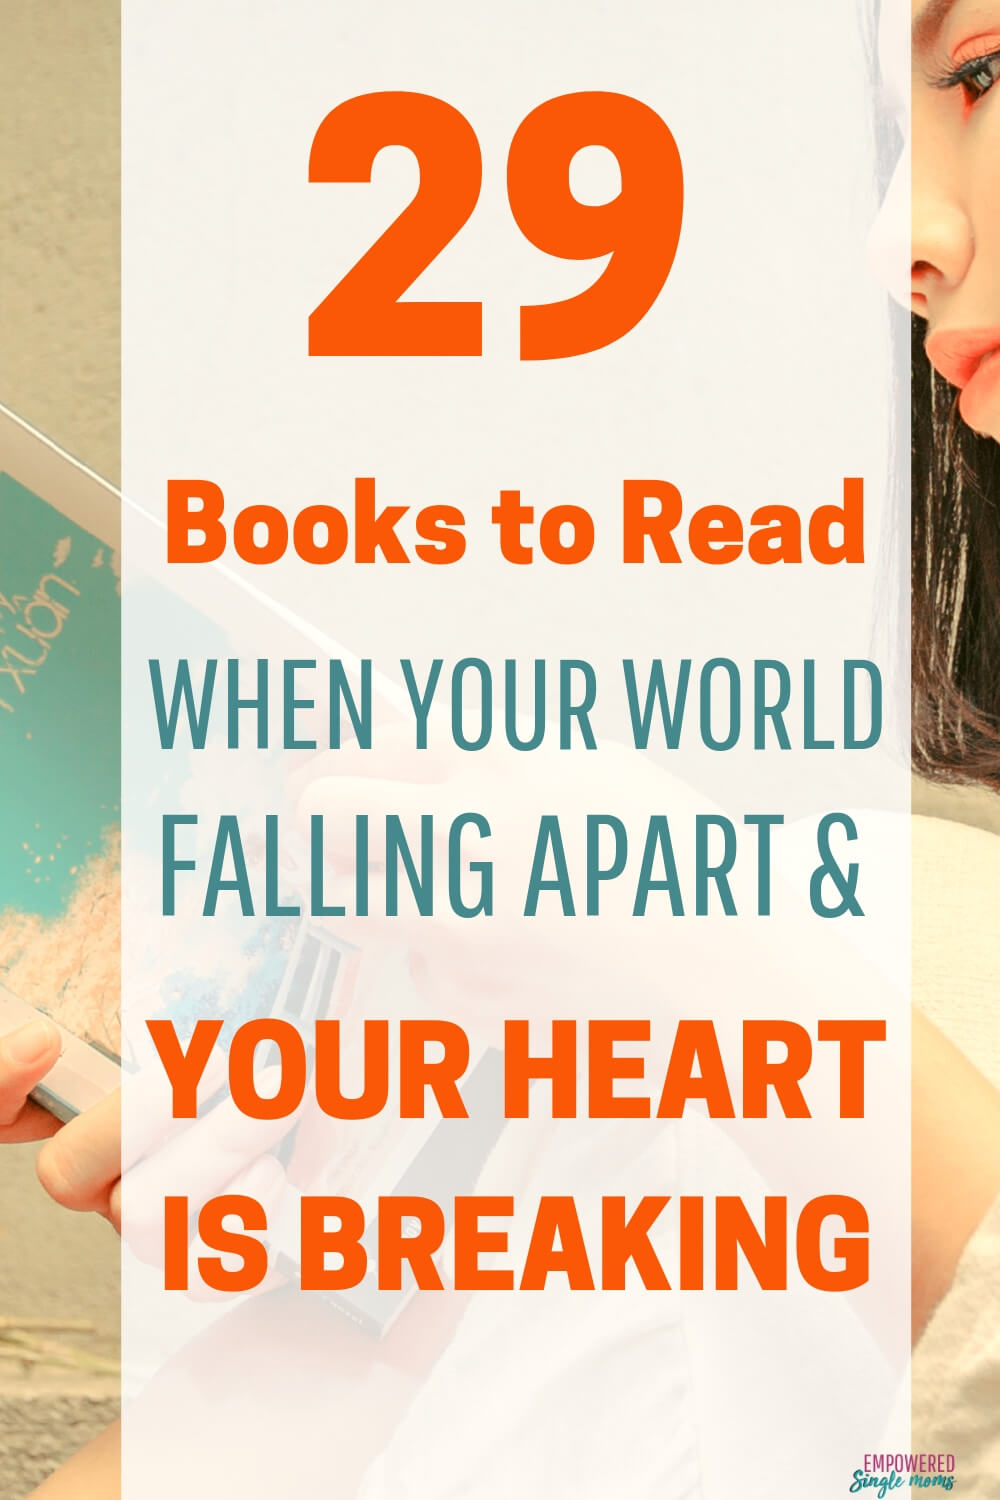 List of 29 inspirational, self help books to read recommended by single moms when your heart is breaking these motivational books will inspire you to pick up the pieces and put your life back together. Your life can be even better than before.